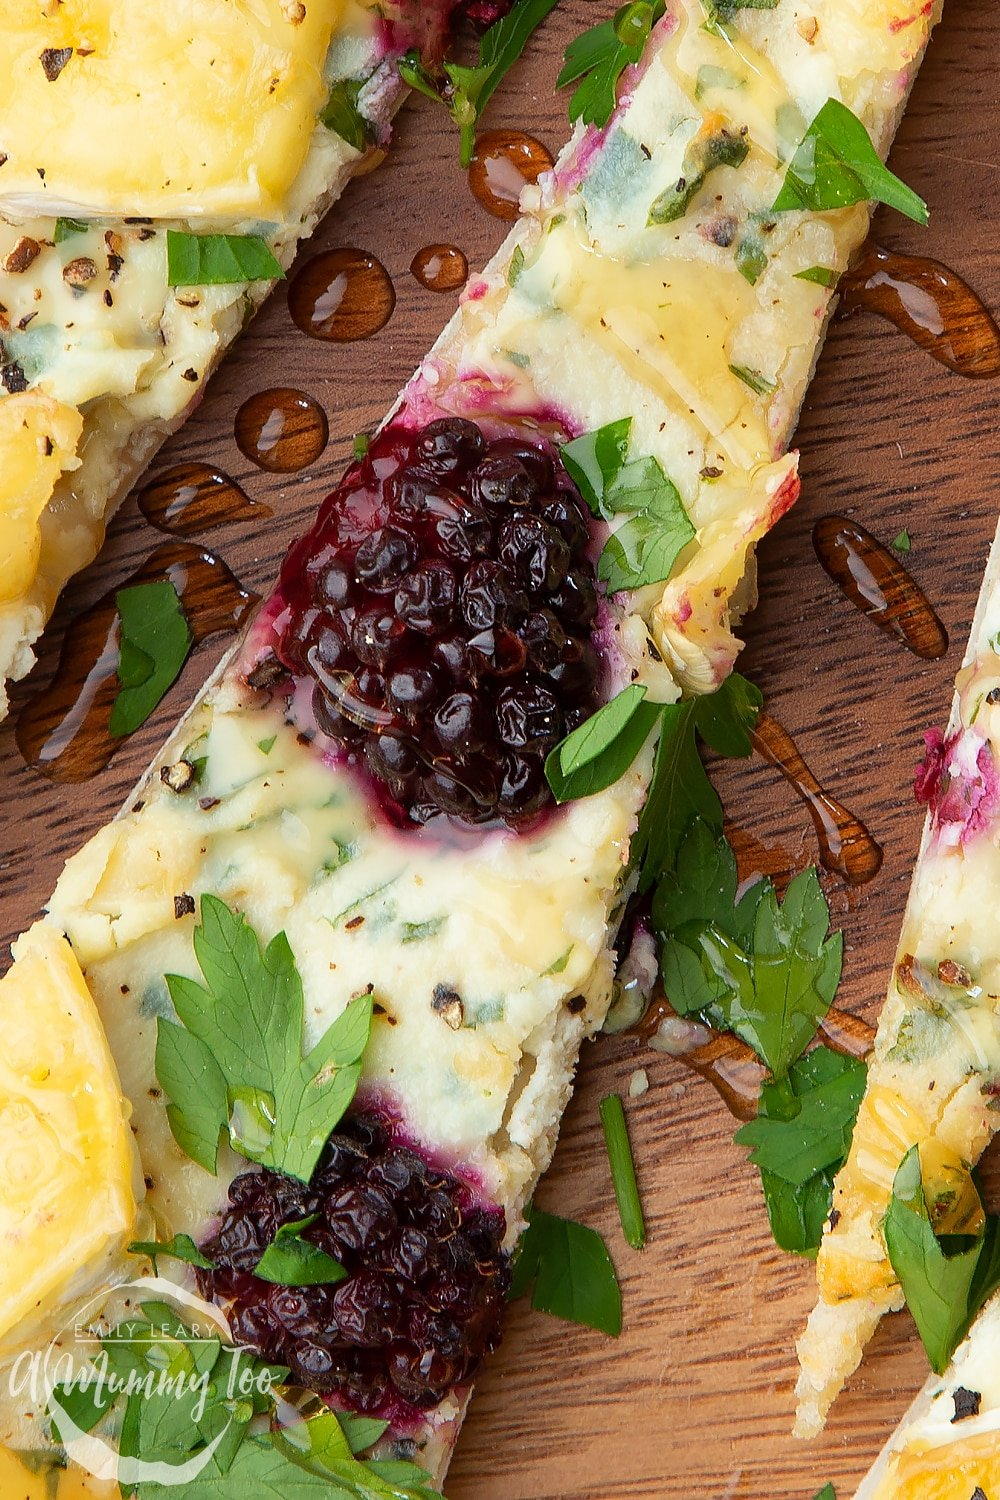 Closeup of a brie and blackberry pizza, sliced on a dark wooden board.